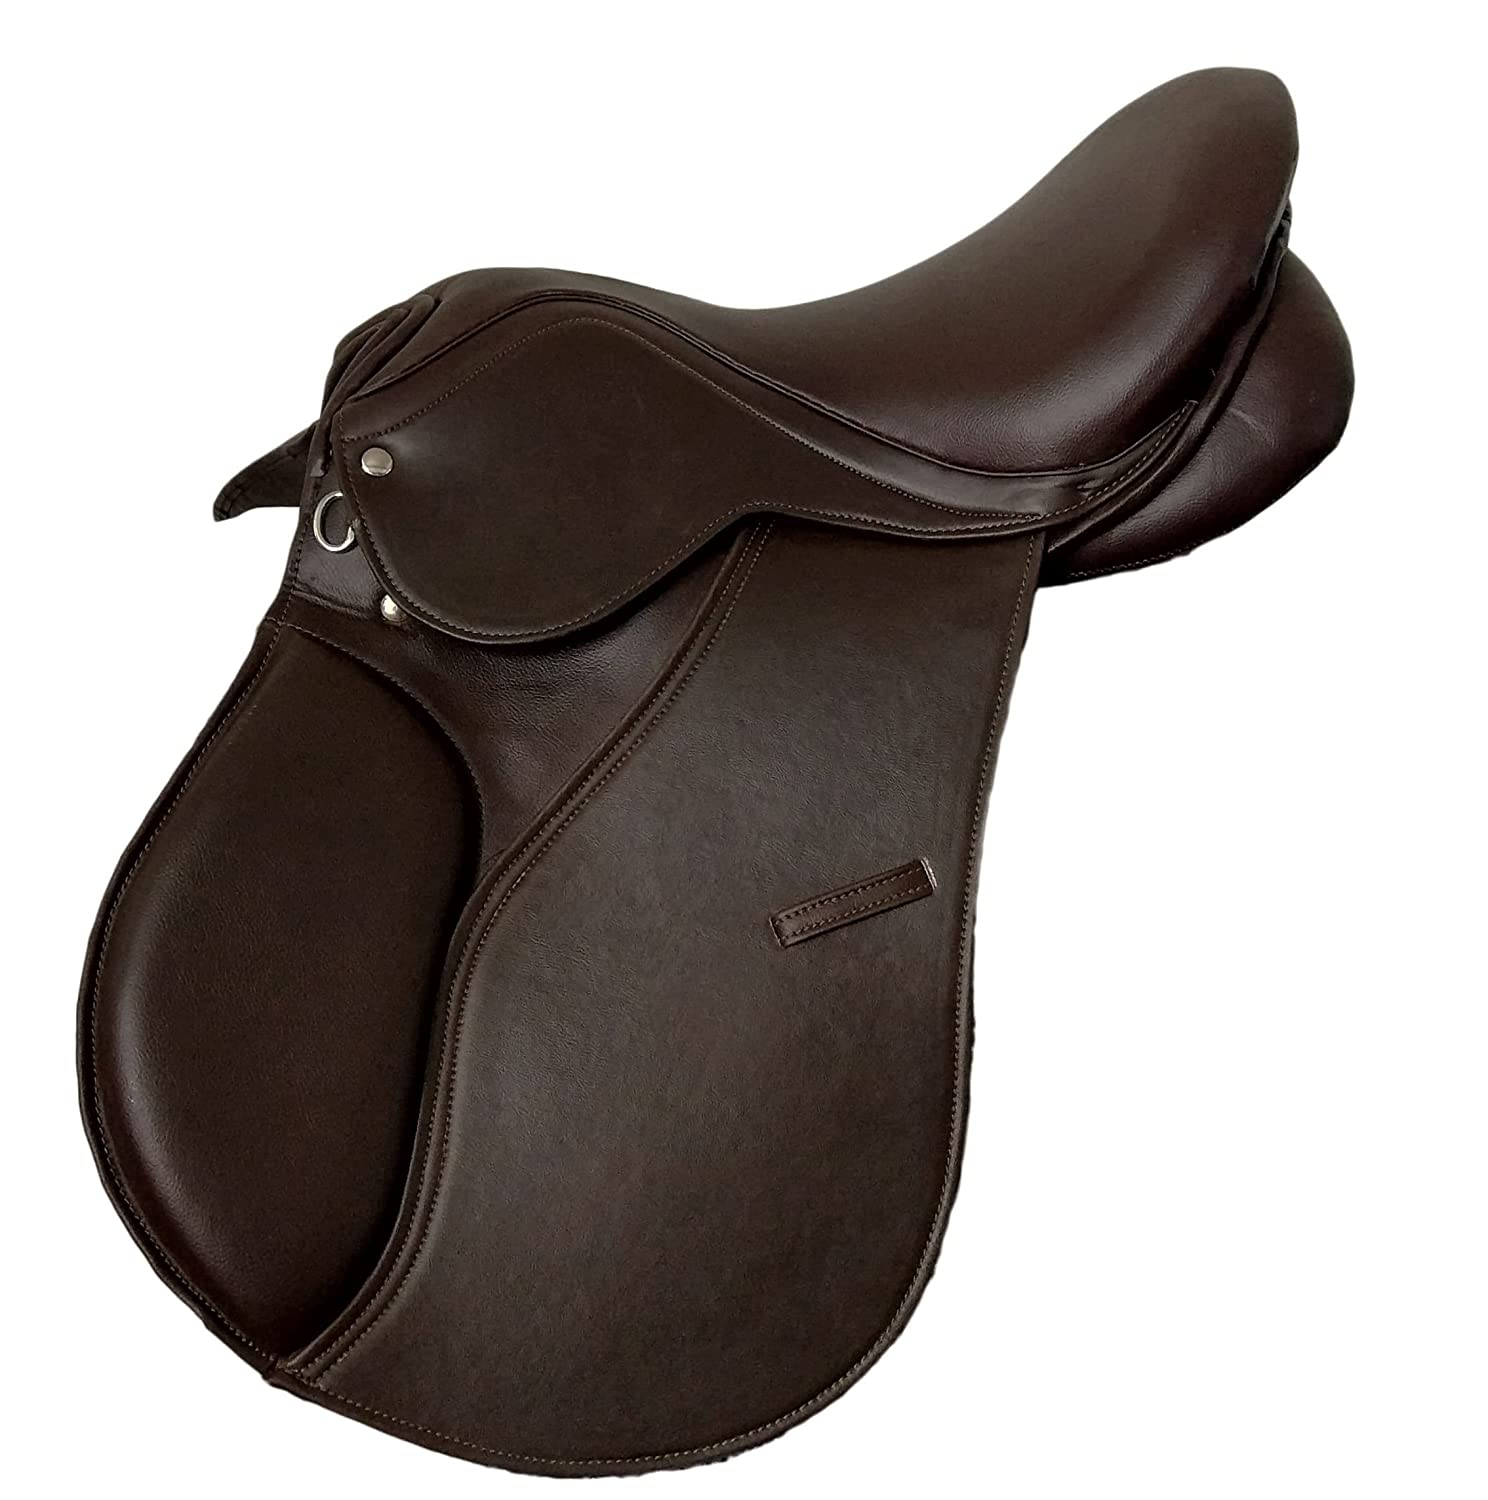 SYNTHETIC JUMPING SELF ADJUSTING GP SADDLE WITH EASY CHANGEABLE GULLET SYSTEM IN BROWN COLOR 17' SEAT